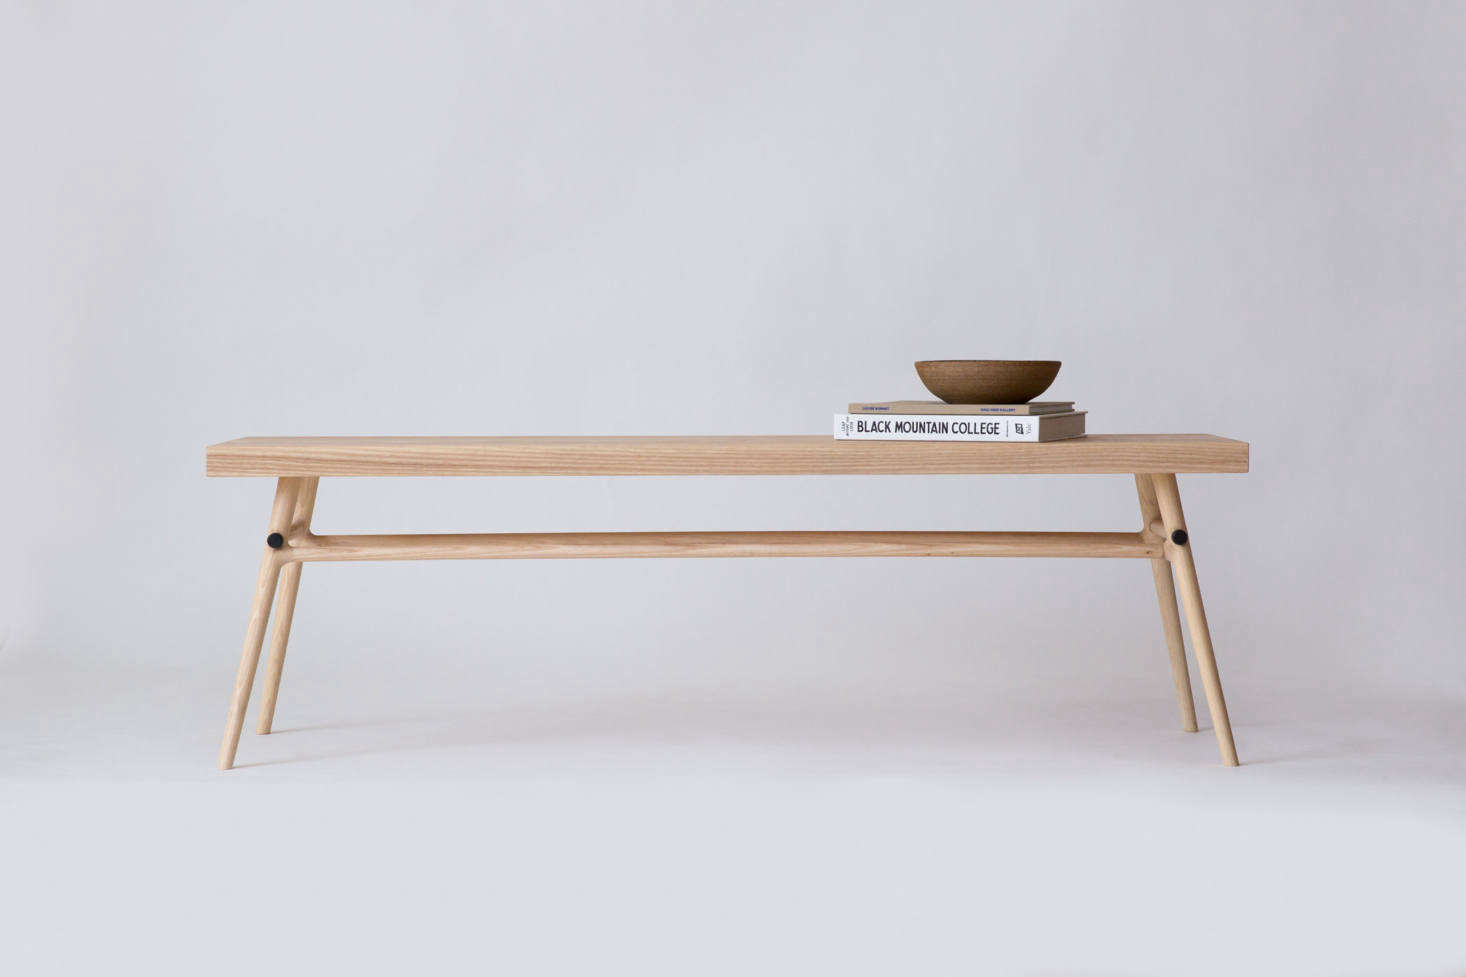 The Bough Bench can be customized to measure 60 inches to 72 inches and features minimalist blackened steel hardware on the cross beams. The hardworking bench can also be used as a coffee table; $1,800.